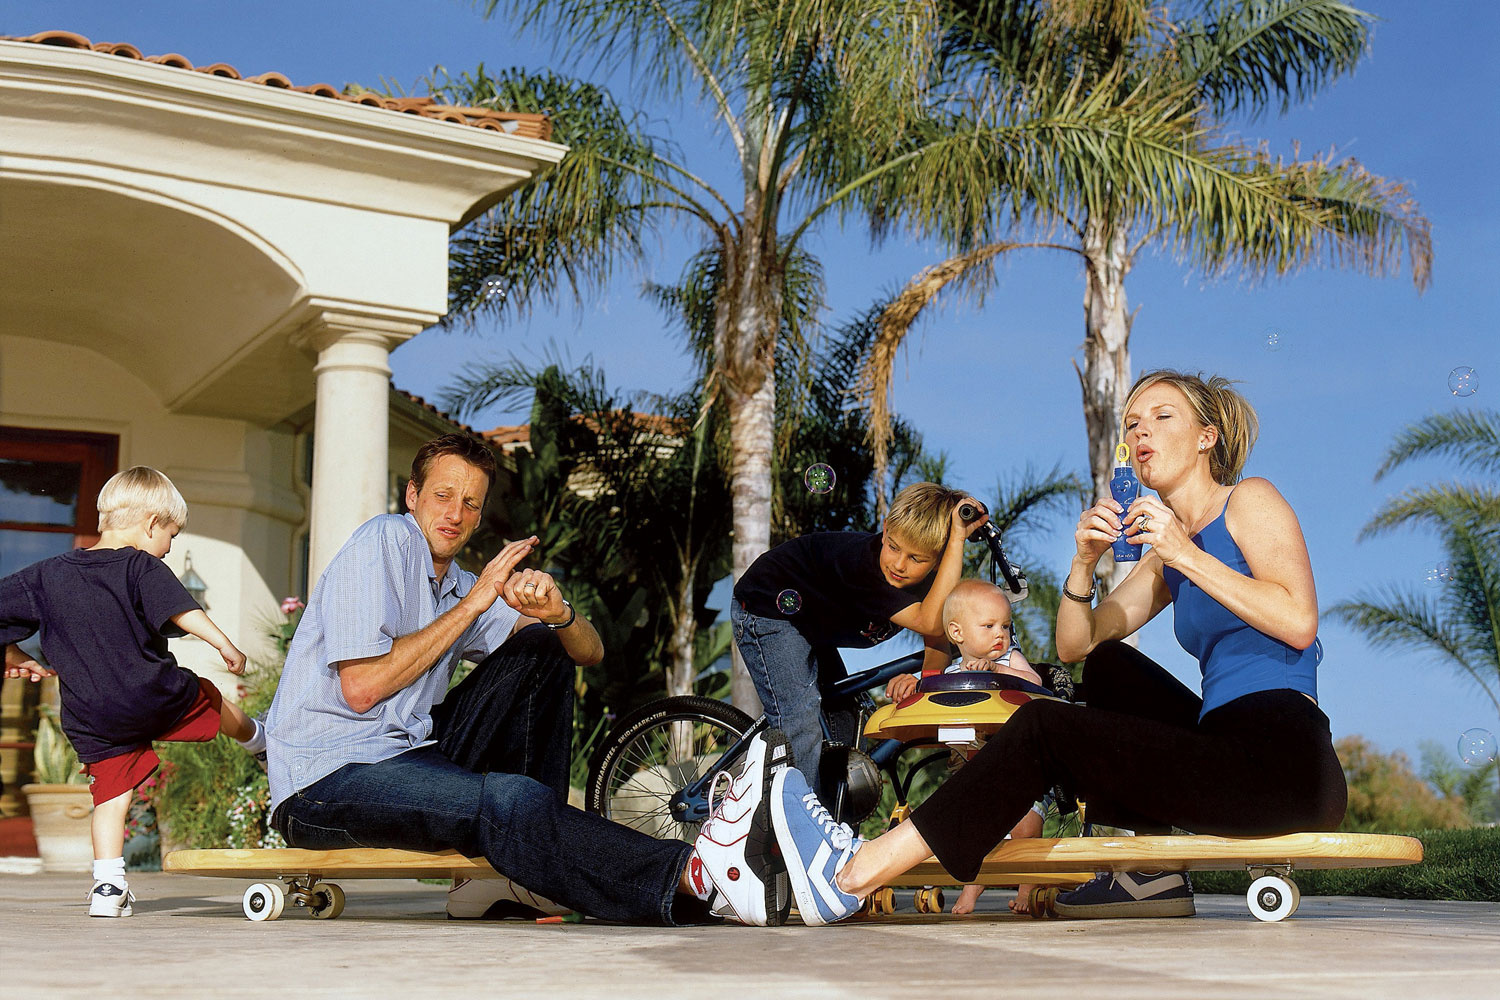 Tony Hawk poses for Sports Illustrated back in 2002 with his family at their home in Carlsbad, CA.